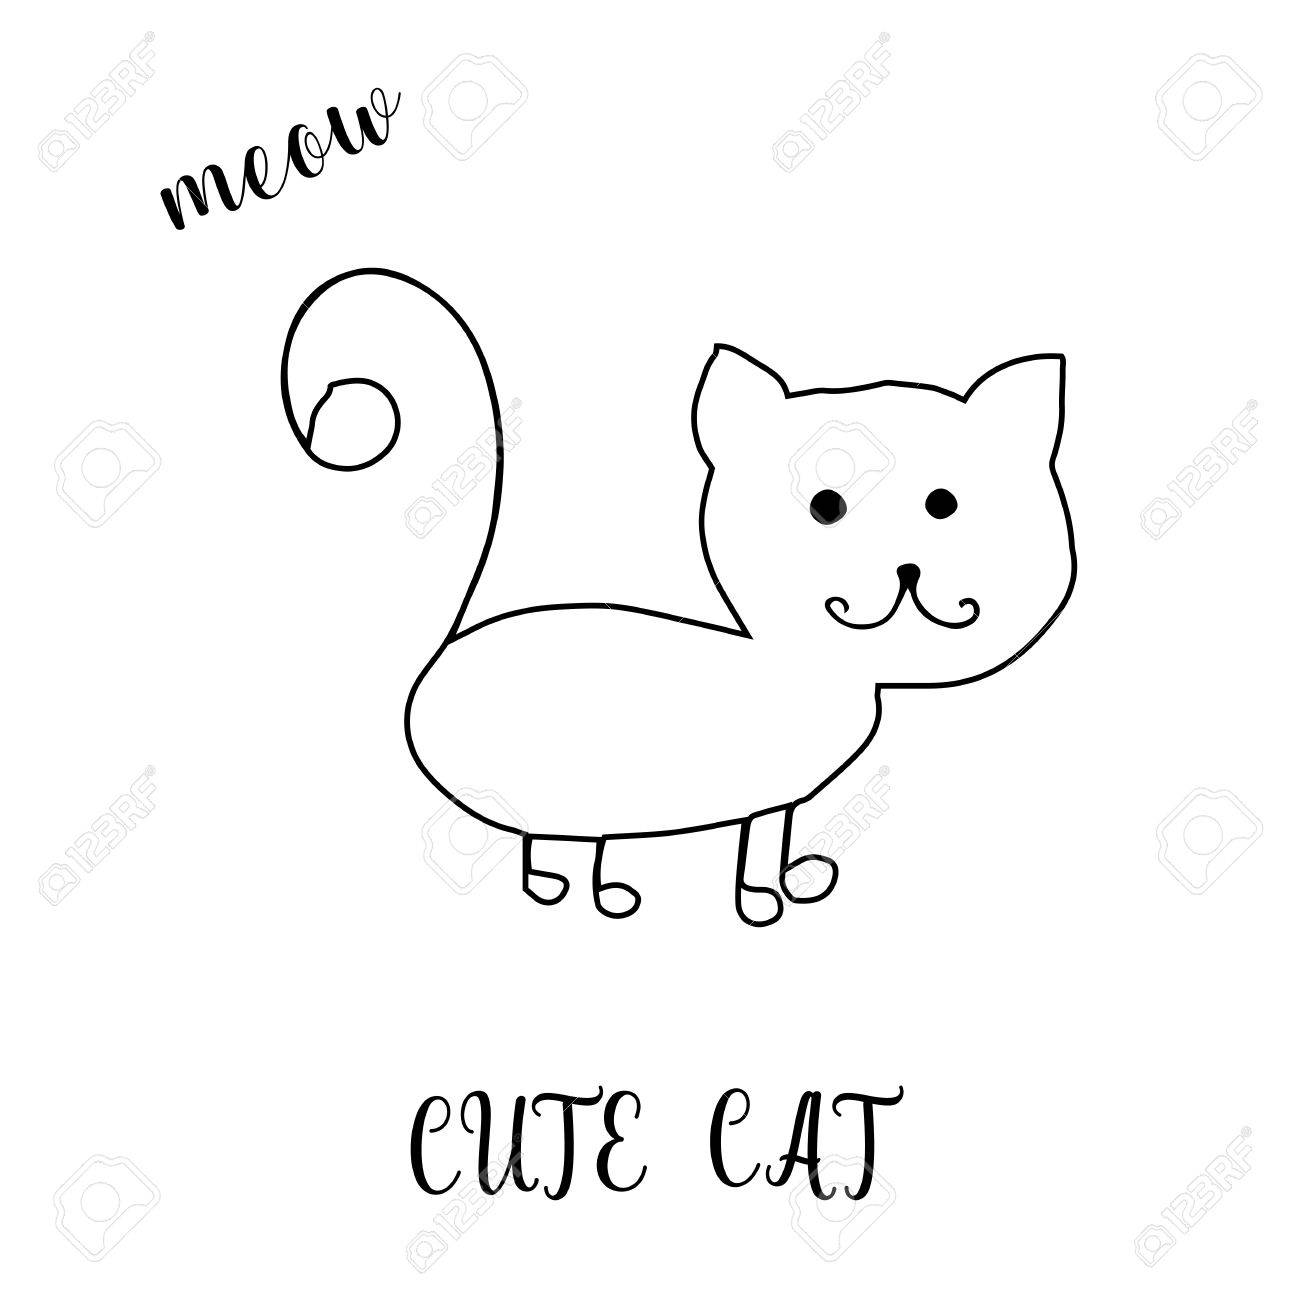 1300x1300 Childrens Drawing A Cute Cat. The Template For The Painting. Hand